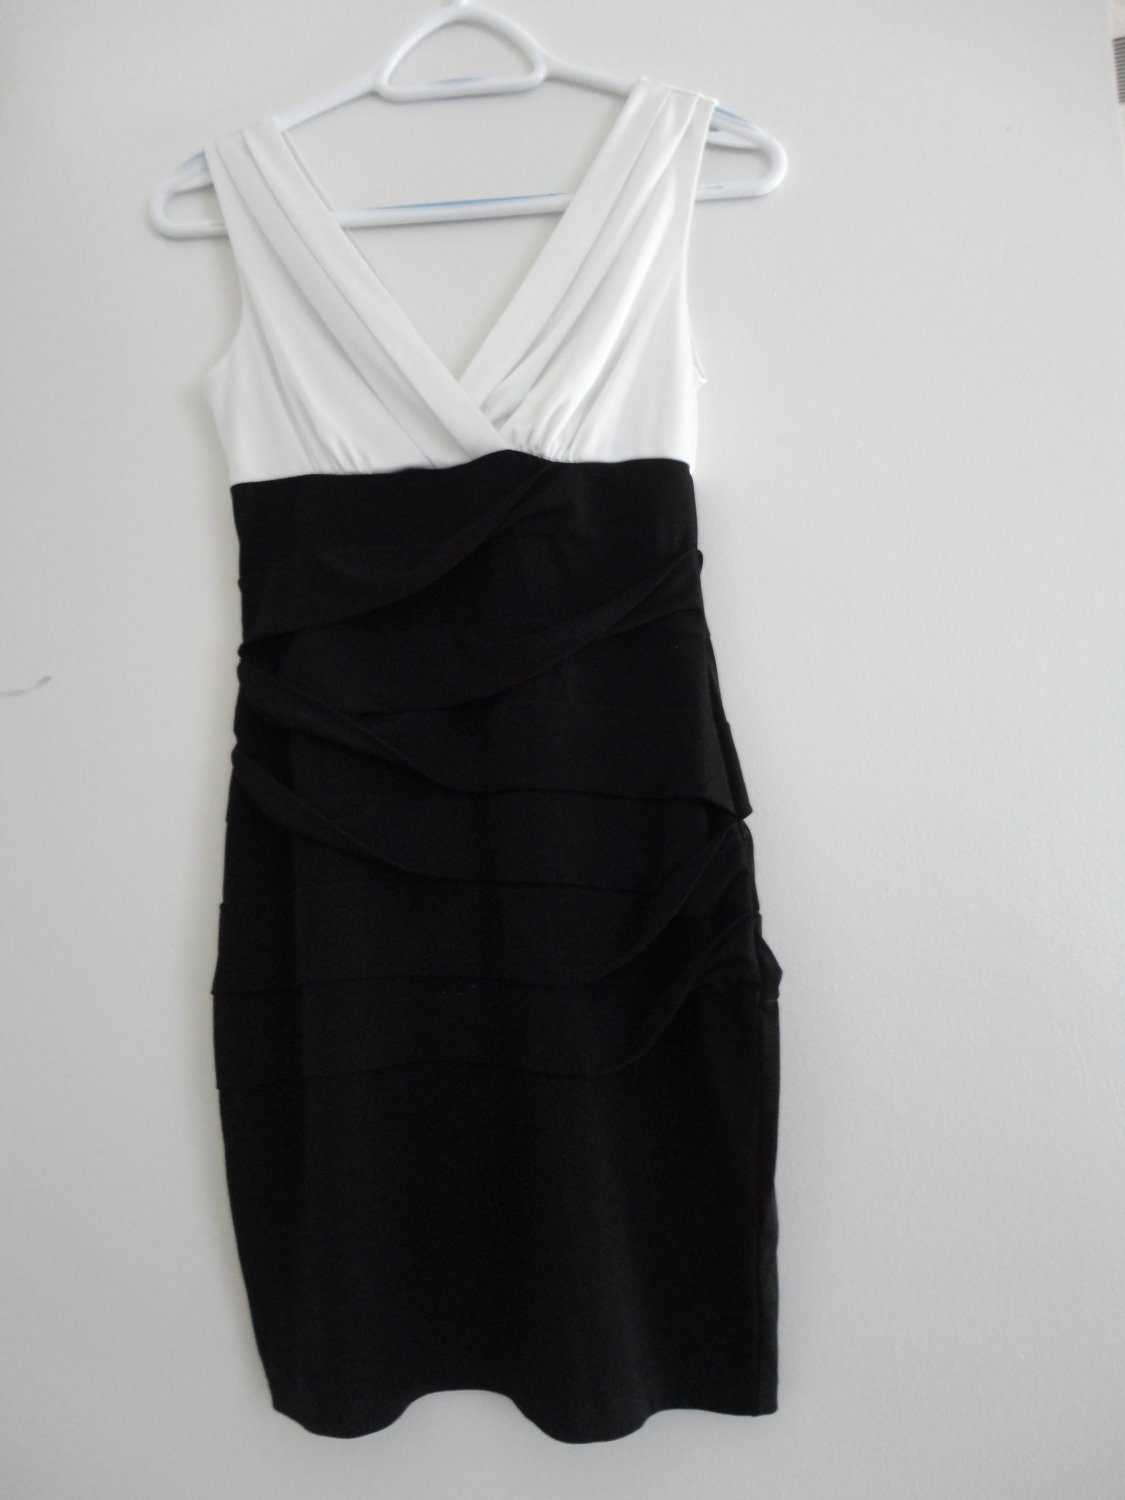 Sweet Storm-Black White Stretch Dress-Small Size